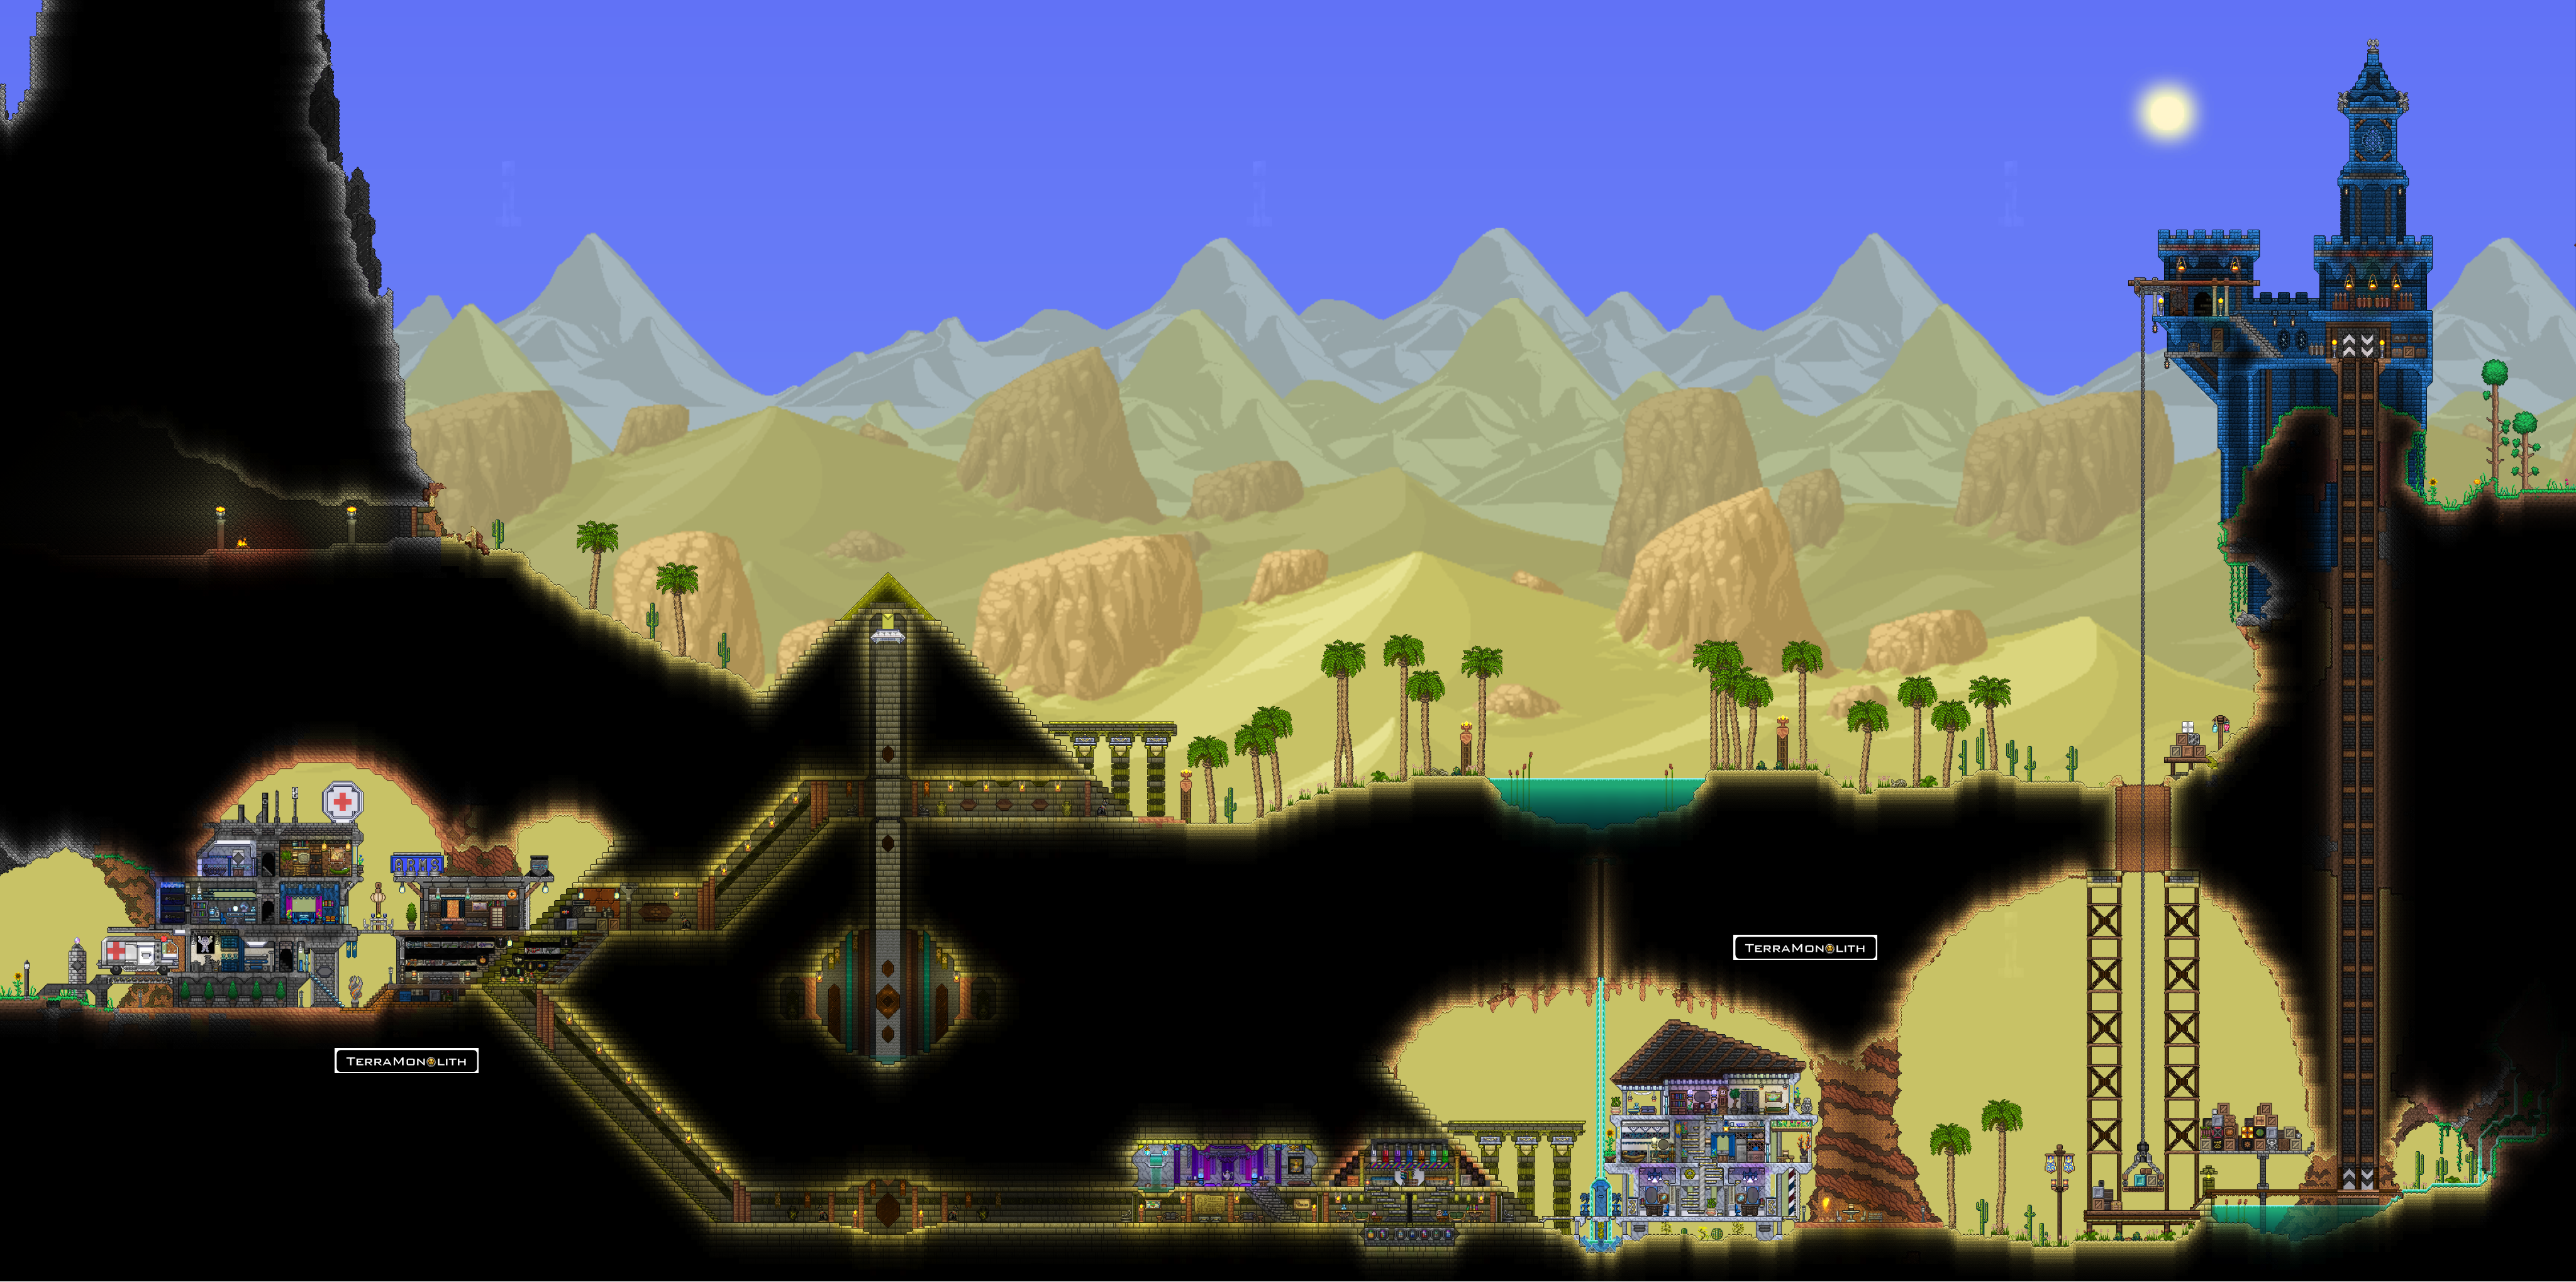 05DesertBiome.png